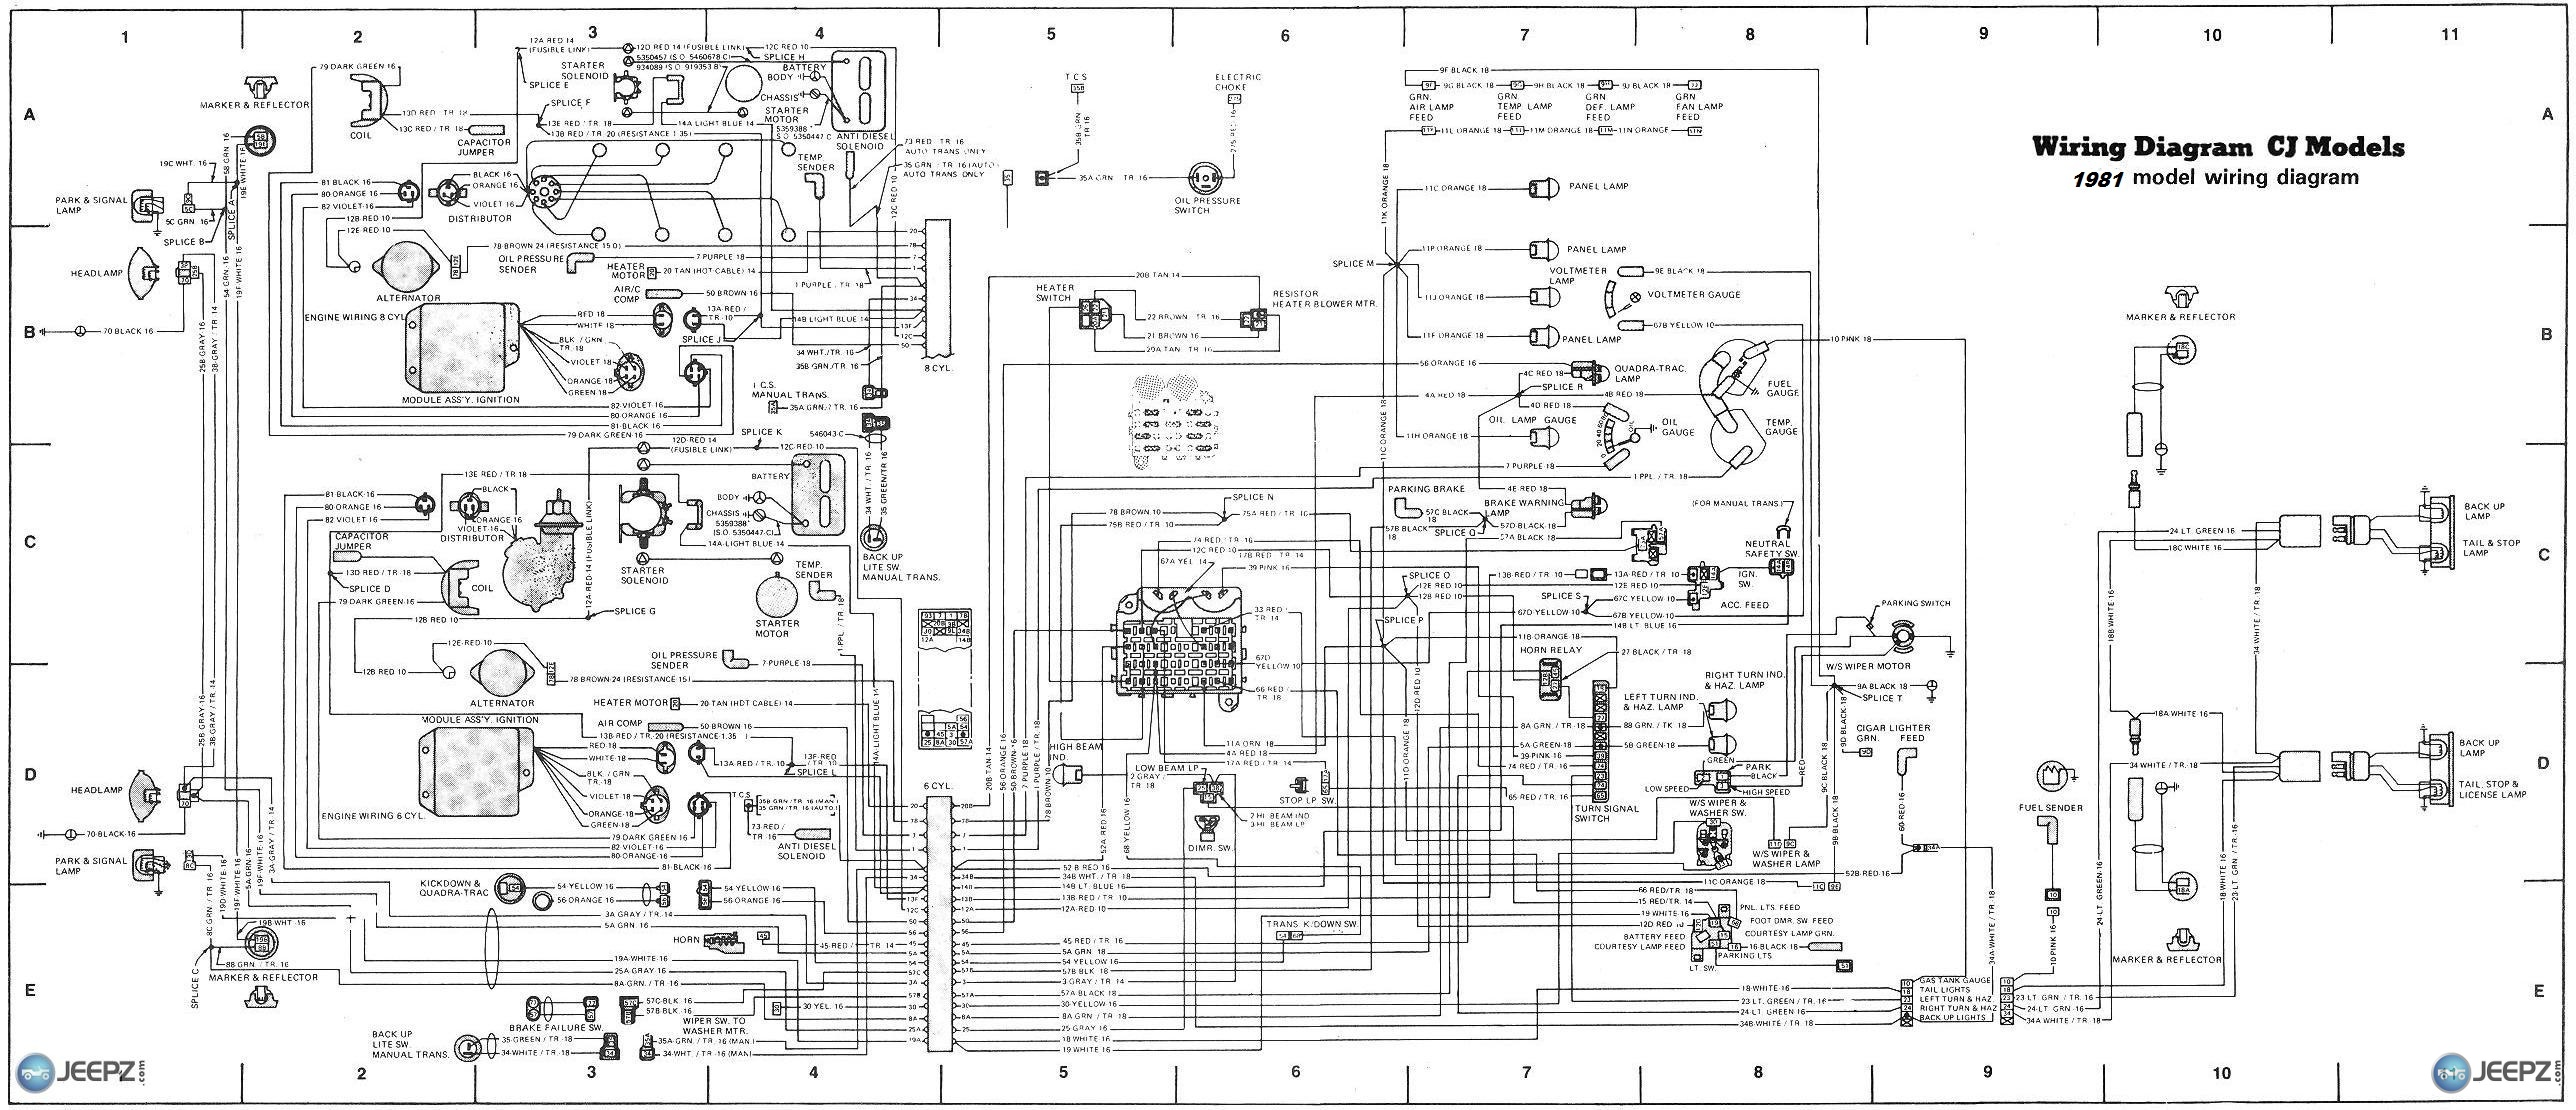 81 Jeep Cj7 Wiring Golden Schematic Box Diagram 2005 Nissan Frontier Main Fuse Darren Criss 1980 Auto Electrical 1976 1981